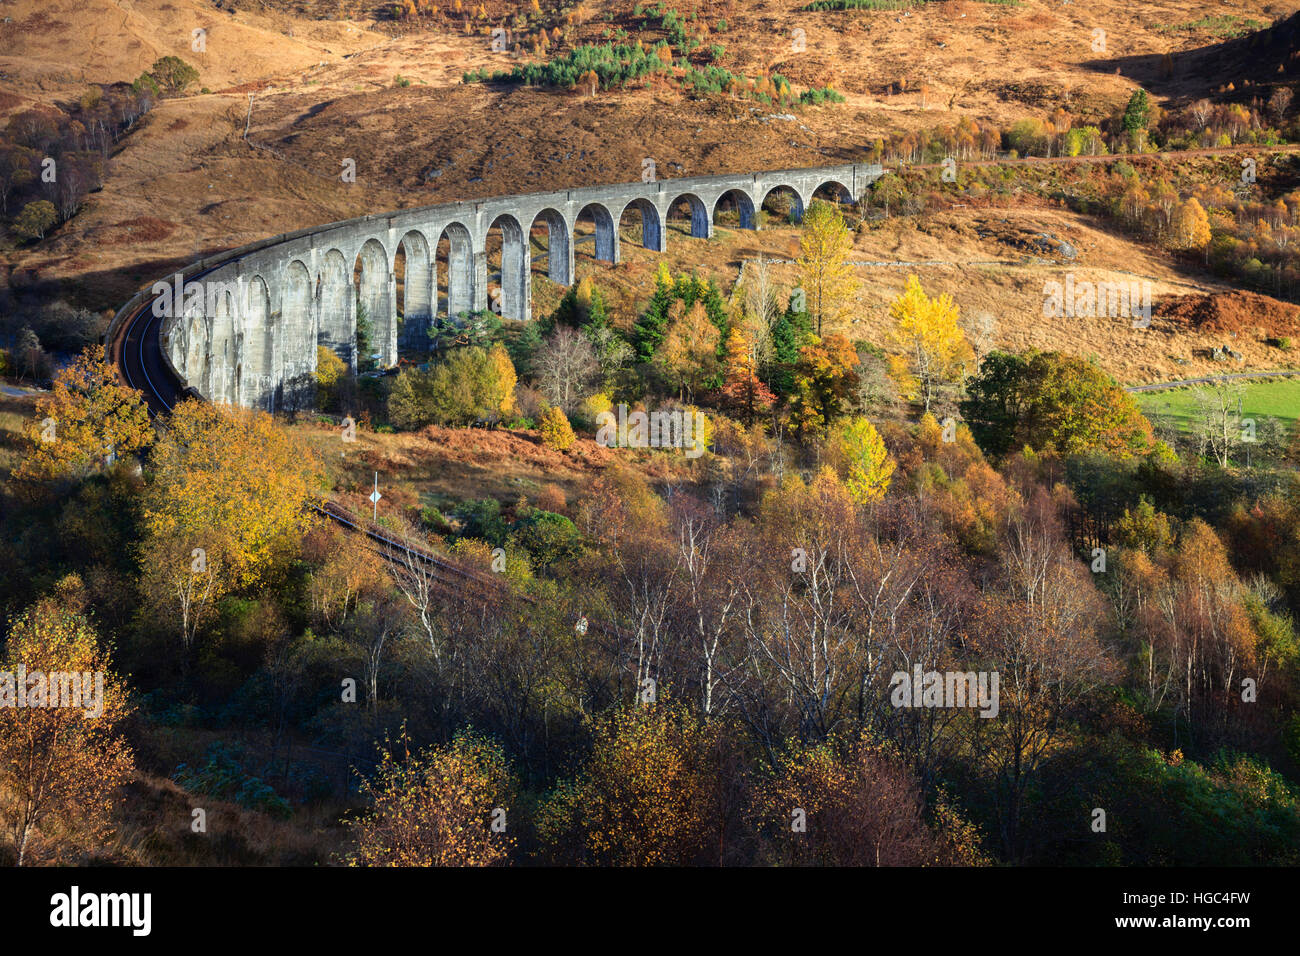 Glenfinnan Viaduct in the Scottish Highlands. - Stock Image